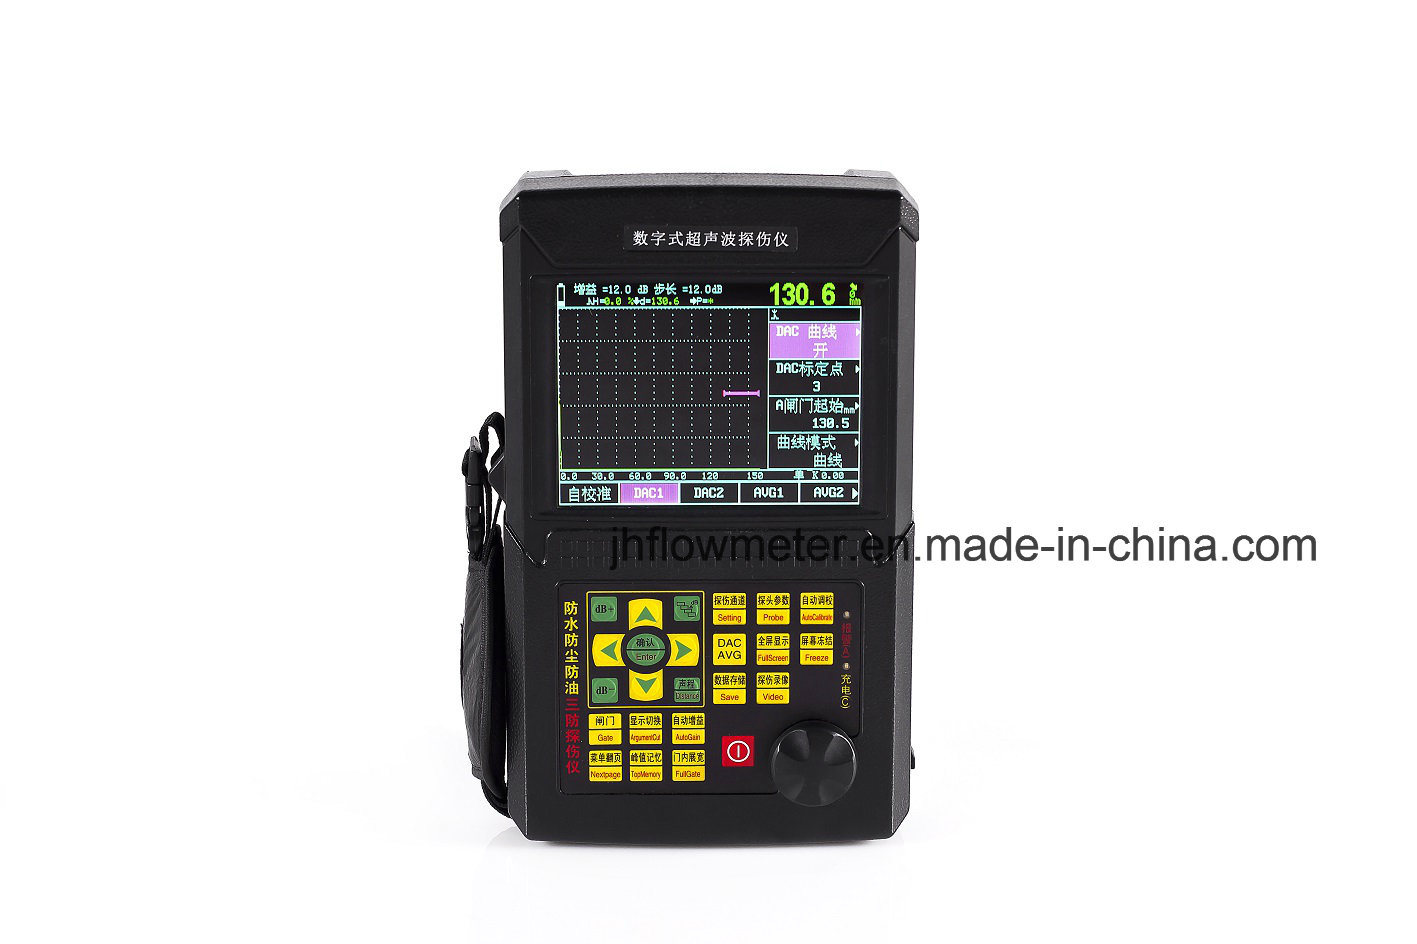 Digital Intelligent Ultrasonic Flaw Detector (JH-LEEB-521)